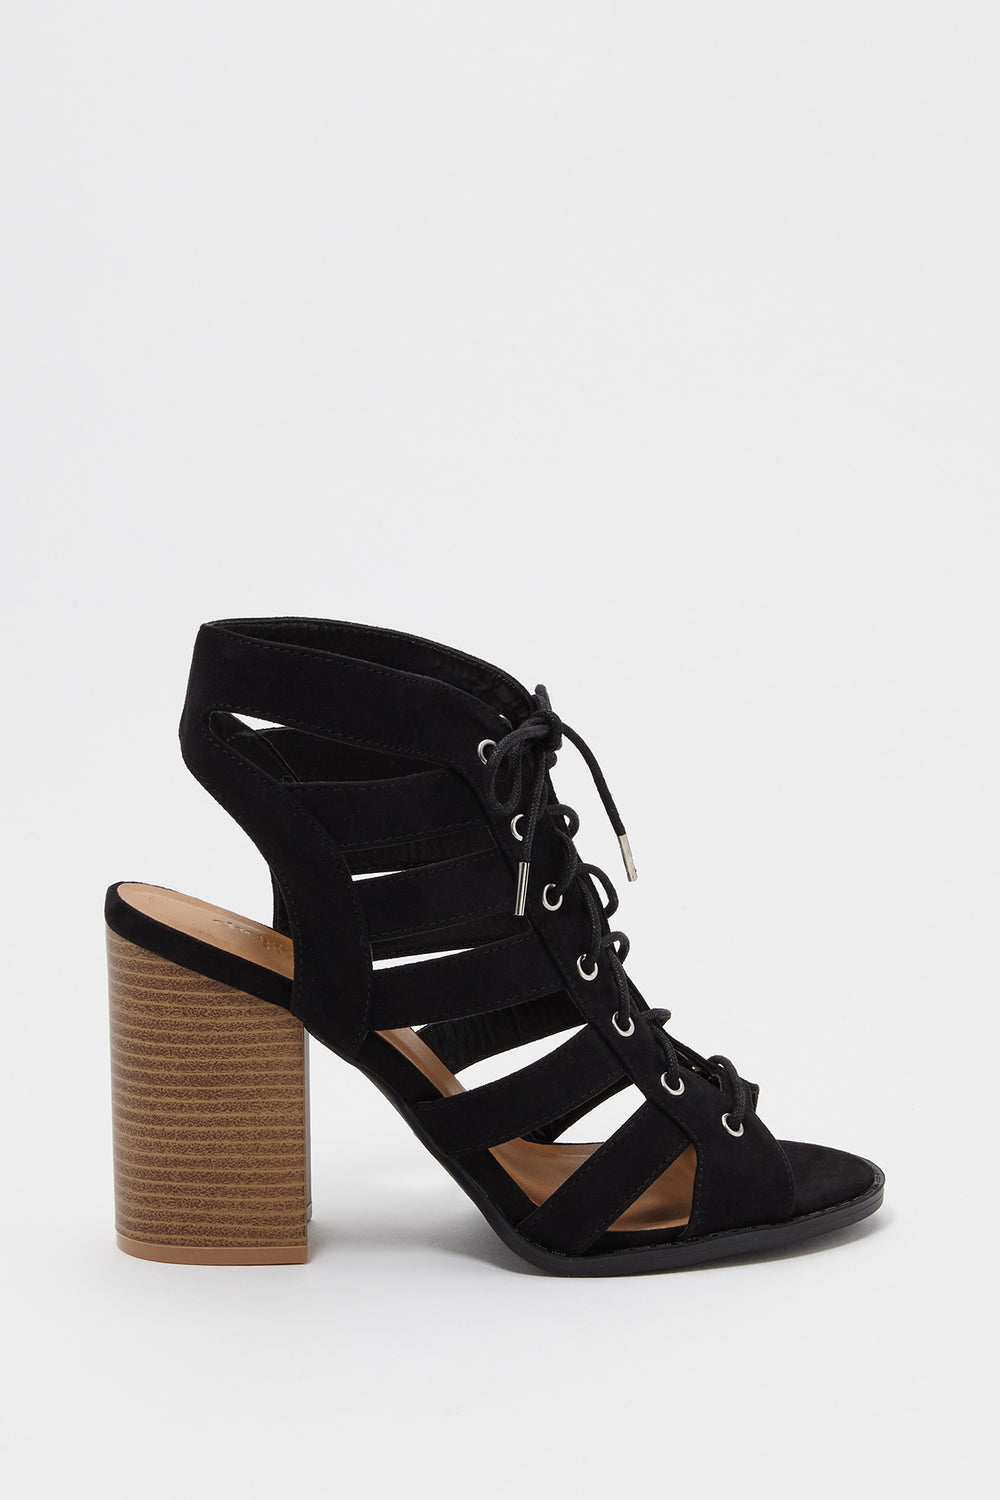 Lace Up Faux-Suede Block Heel Sandal Black